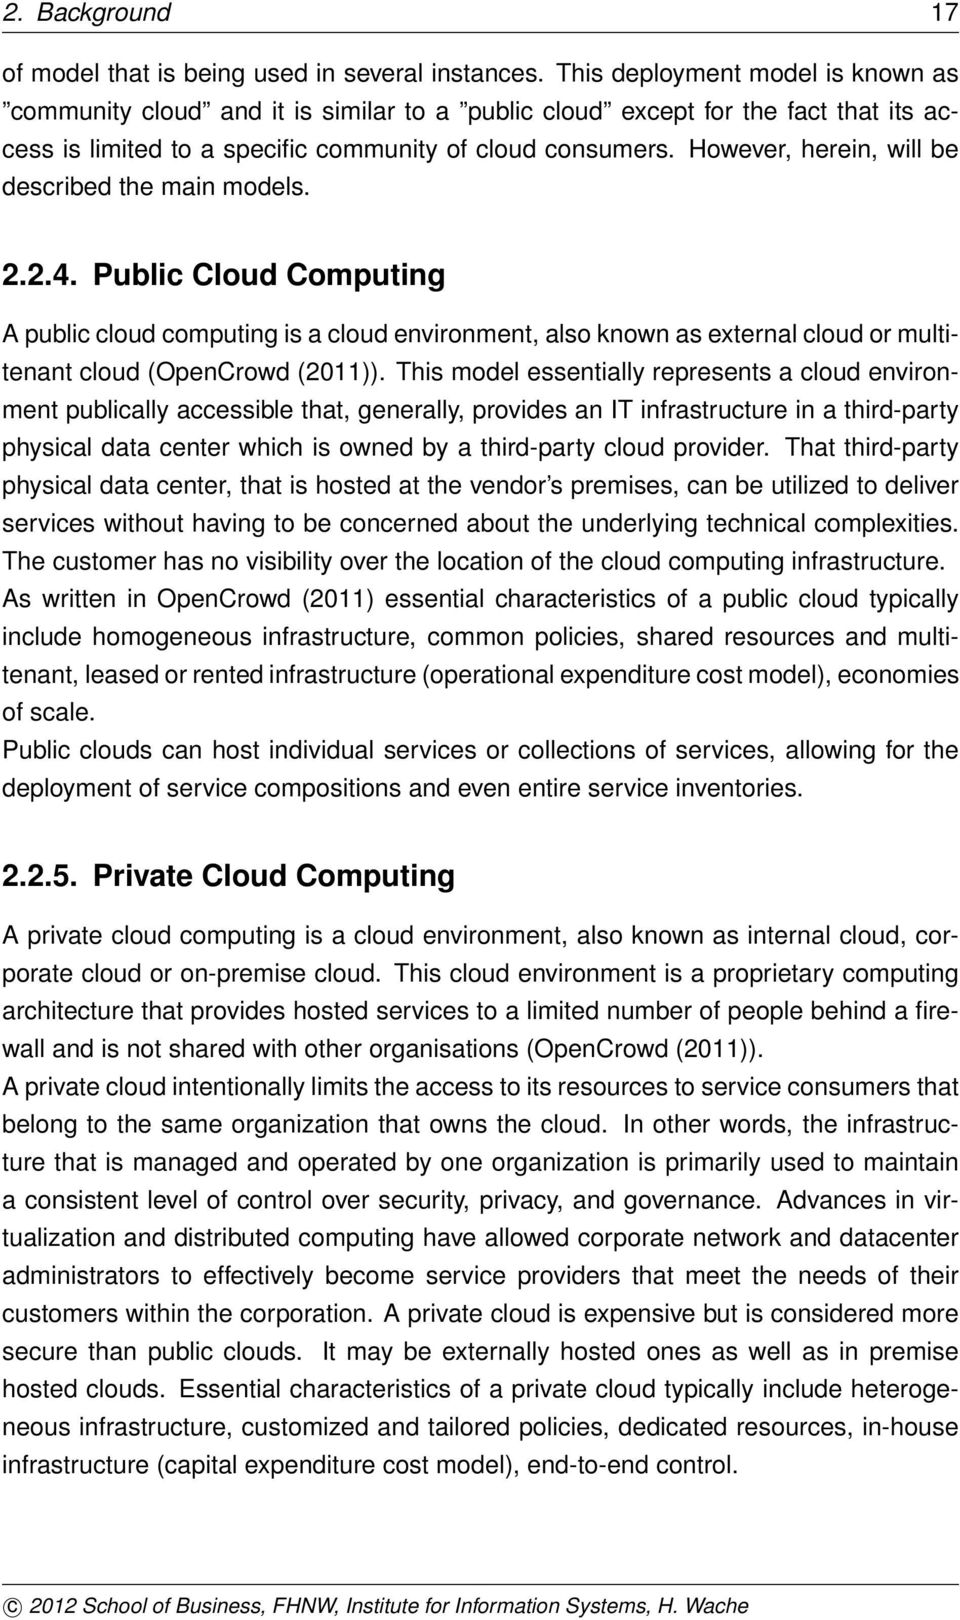 However, herein, will be described the main models. 2.2.4. Public Cloud Computing A public cloud computing is a cloud environment, also known as external cloud or multitenant cloud (OpenCrowd (2011)).